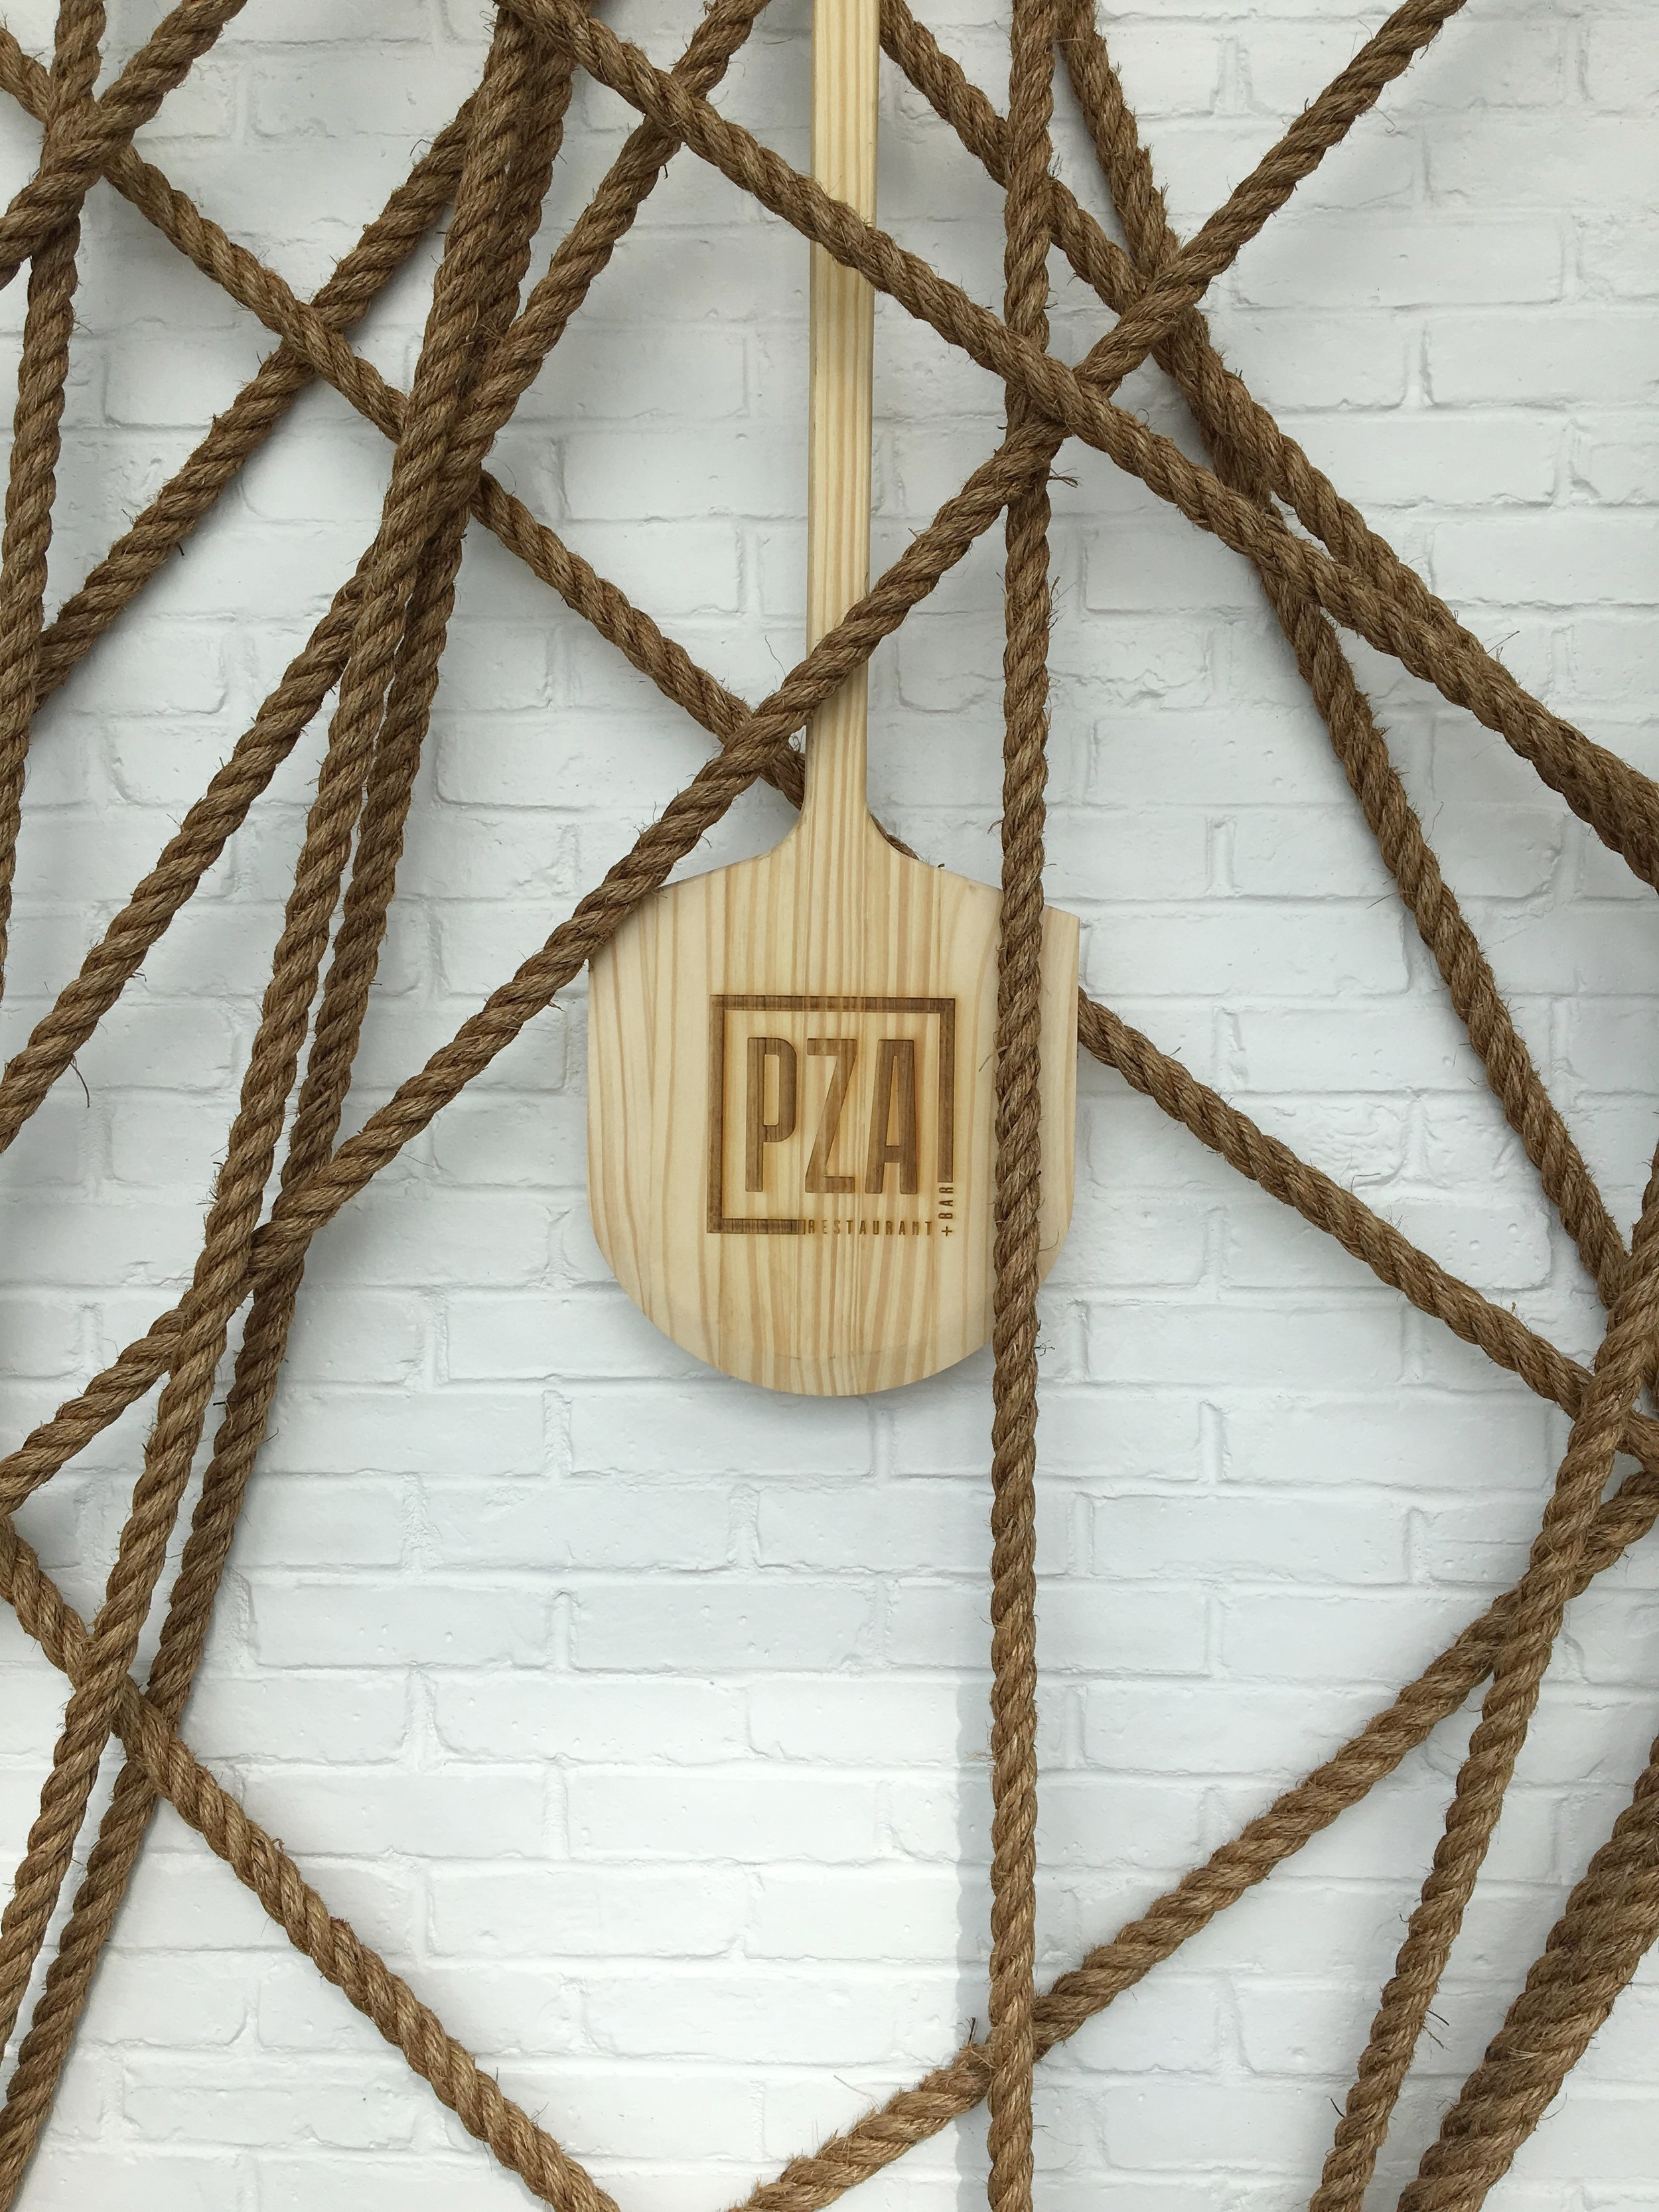 PZARestaurant,Toronto - In collaboration with Rob Southcott Studio and II BY IV Design, our studio designed and produced an exciting installation featuring over 100 hand charred Pizza Peels and over 1200 ft of Rope that hover over the main dining area of this unique space.